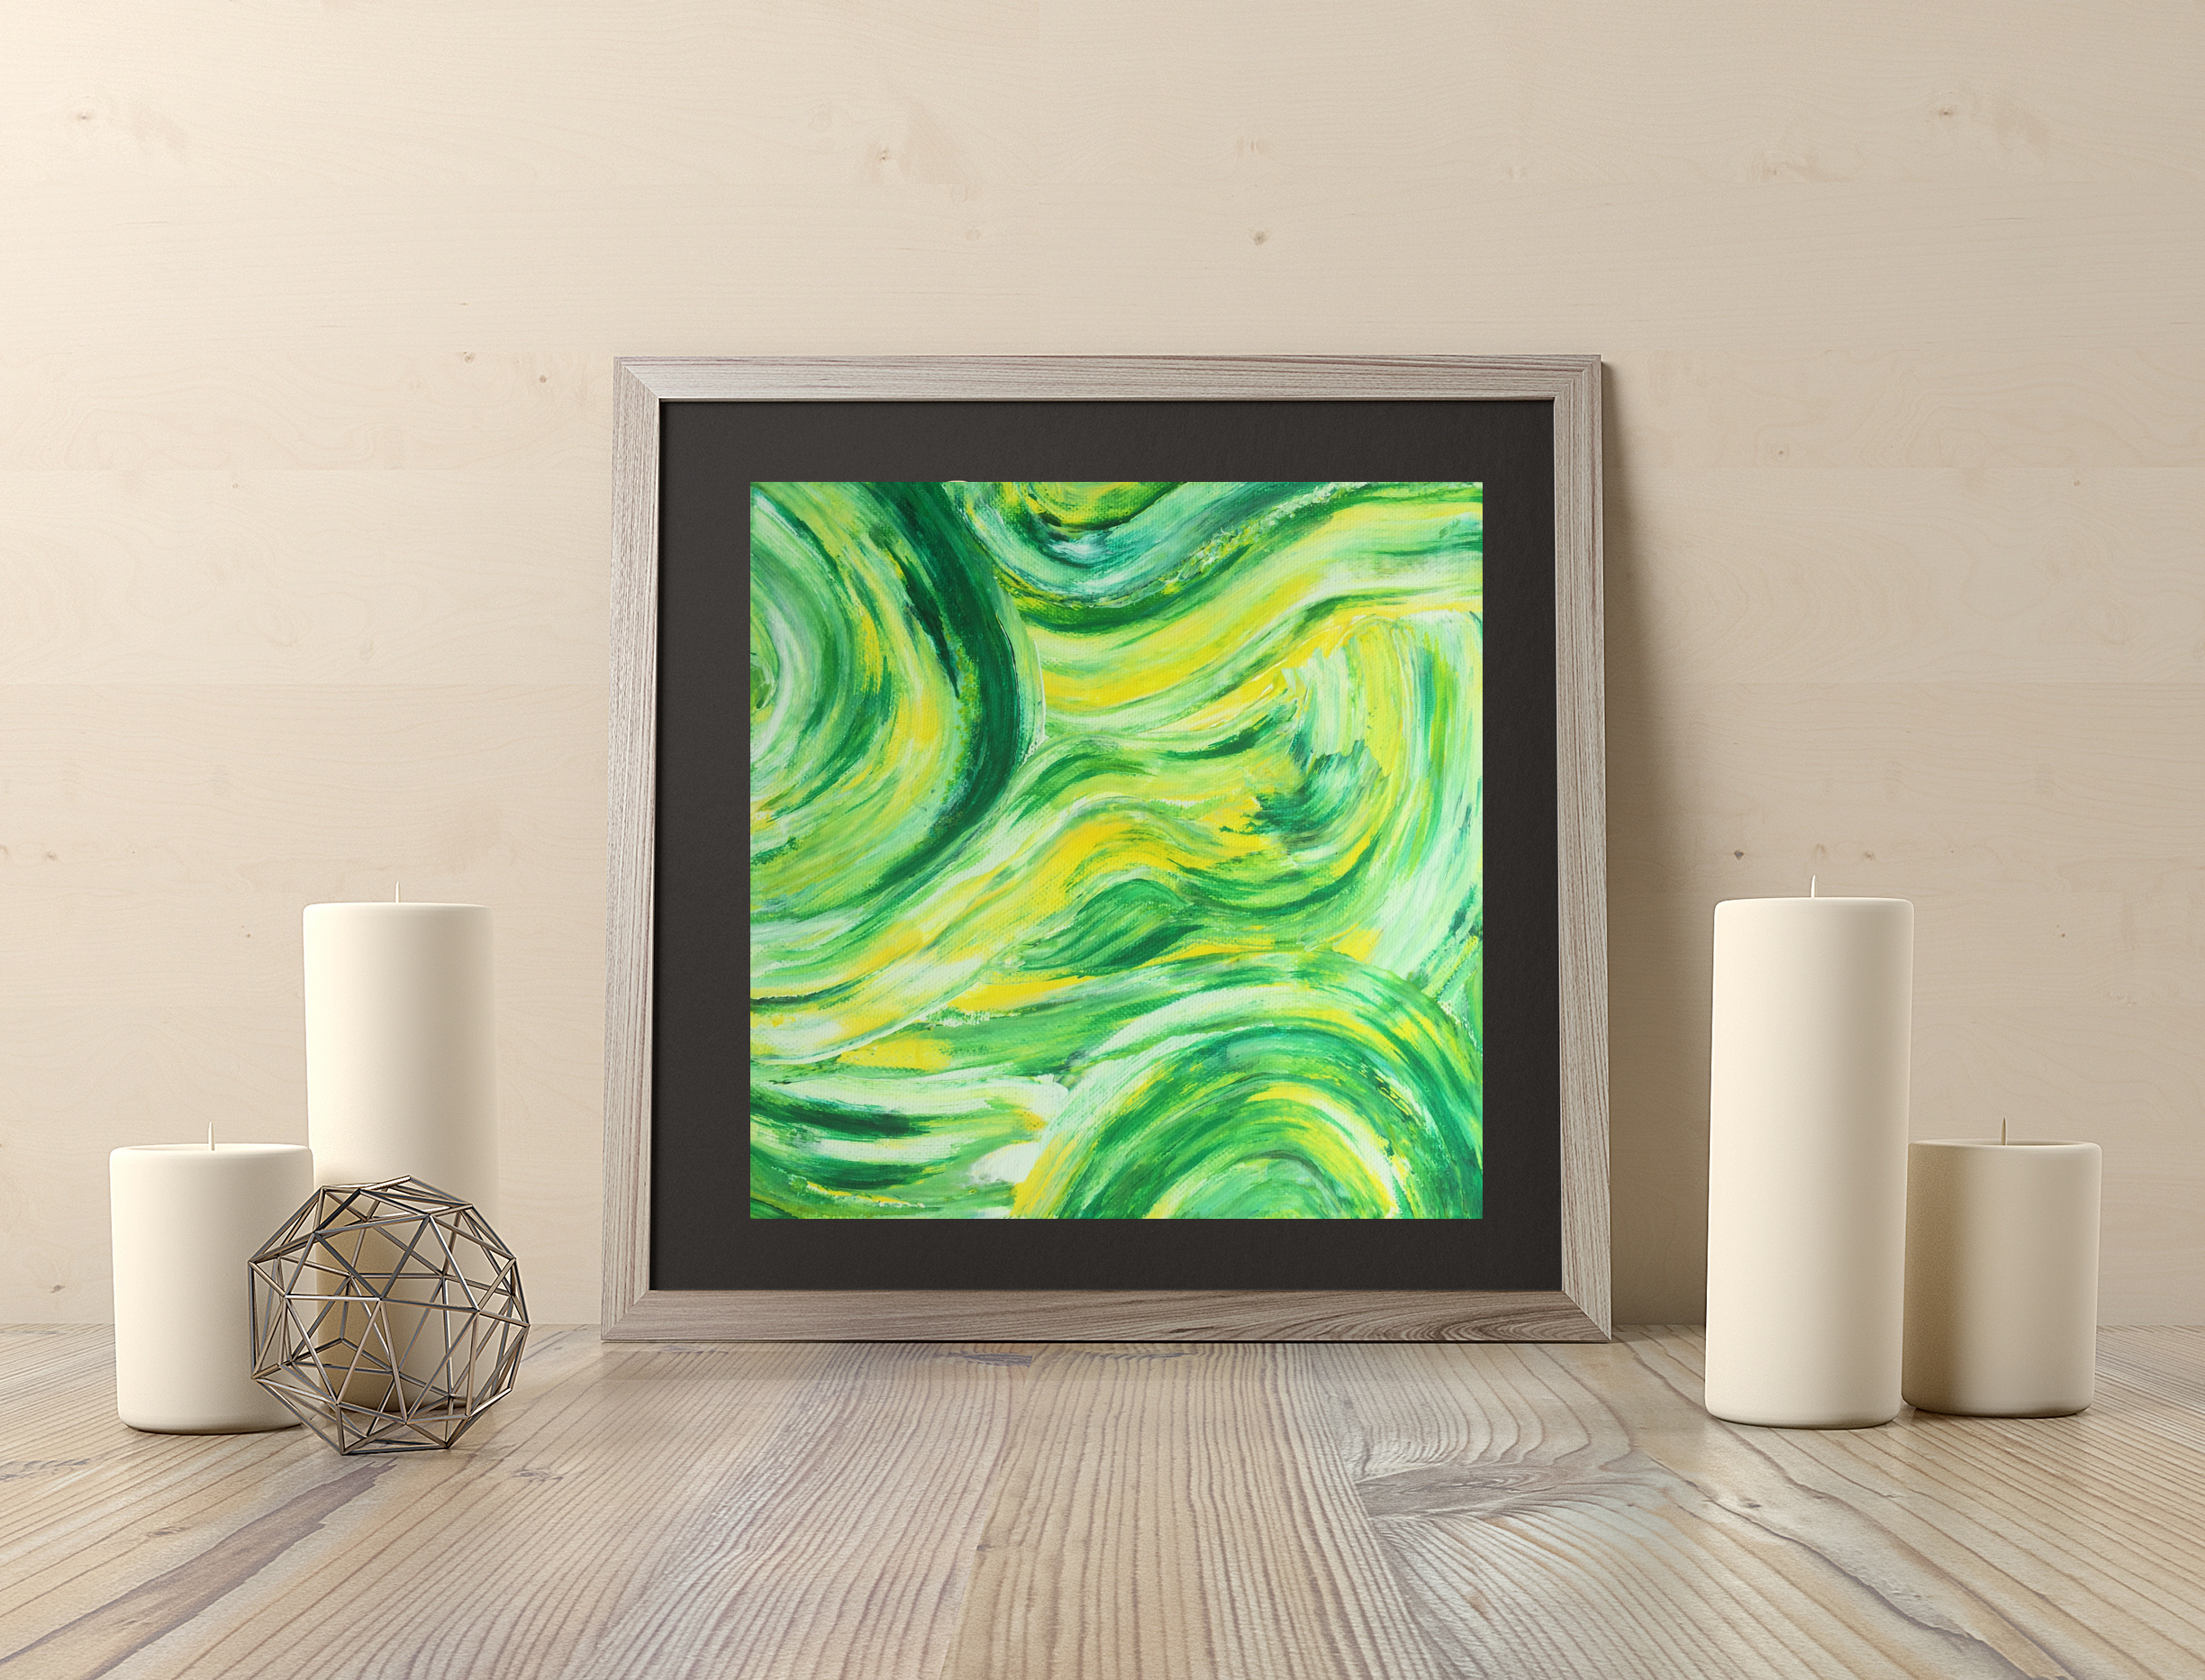 Green yellow swirl 8x8in $35